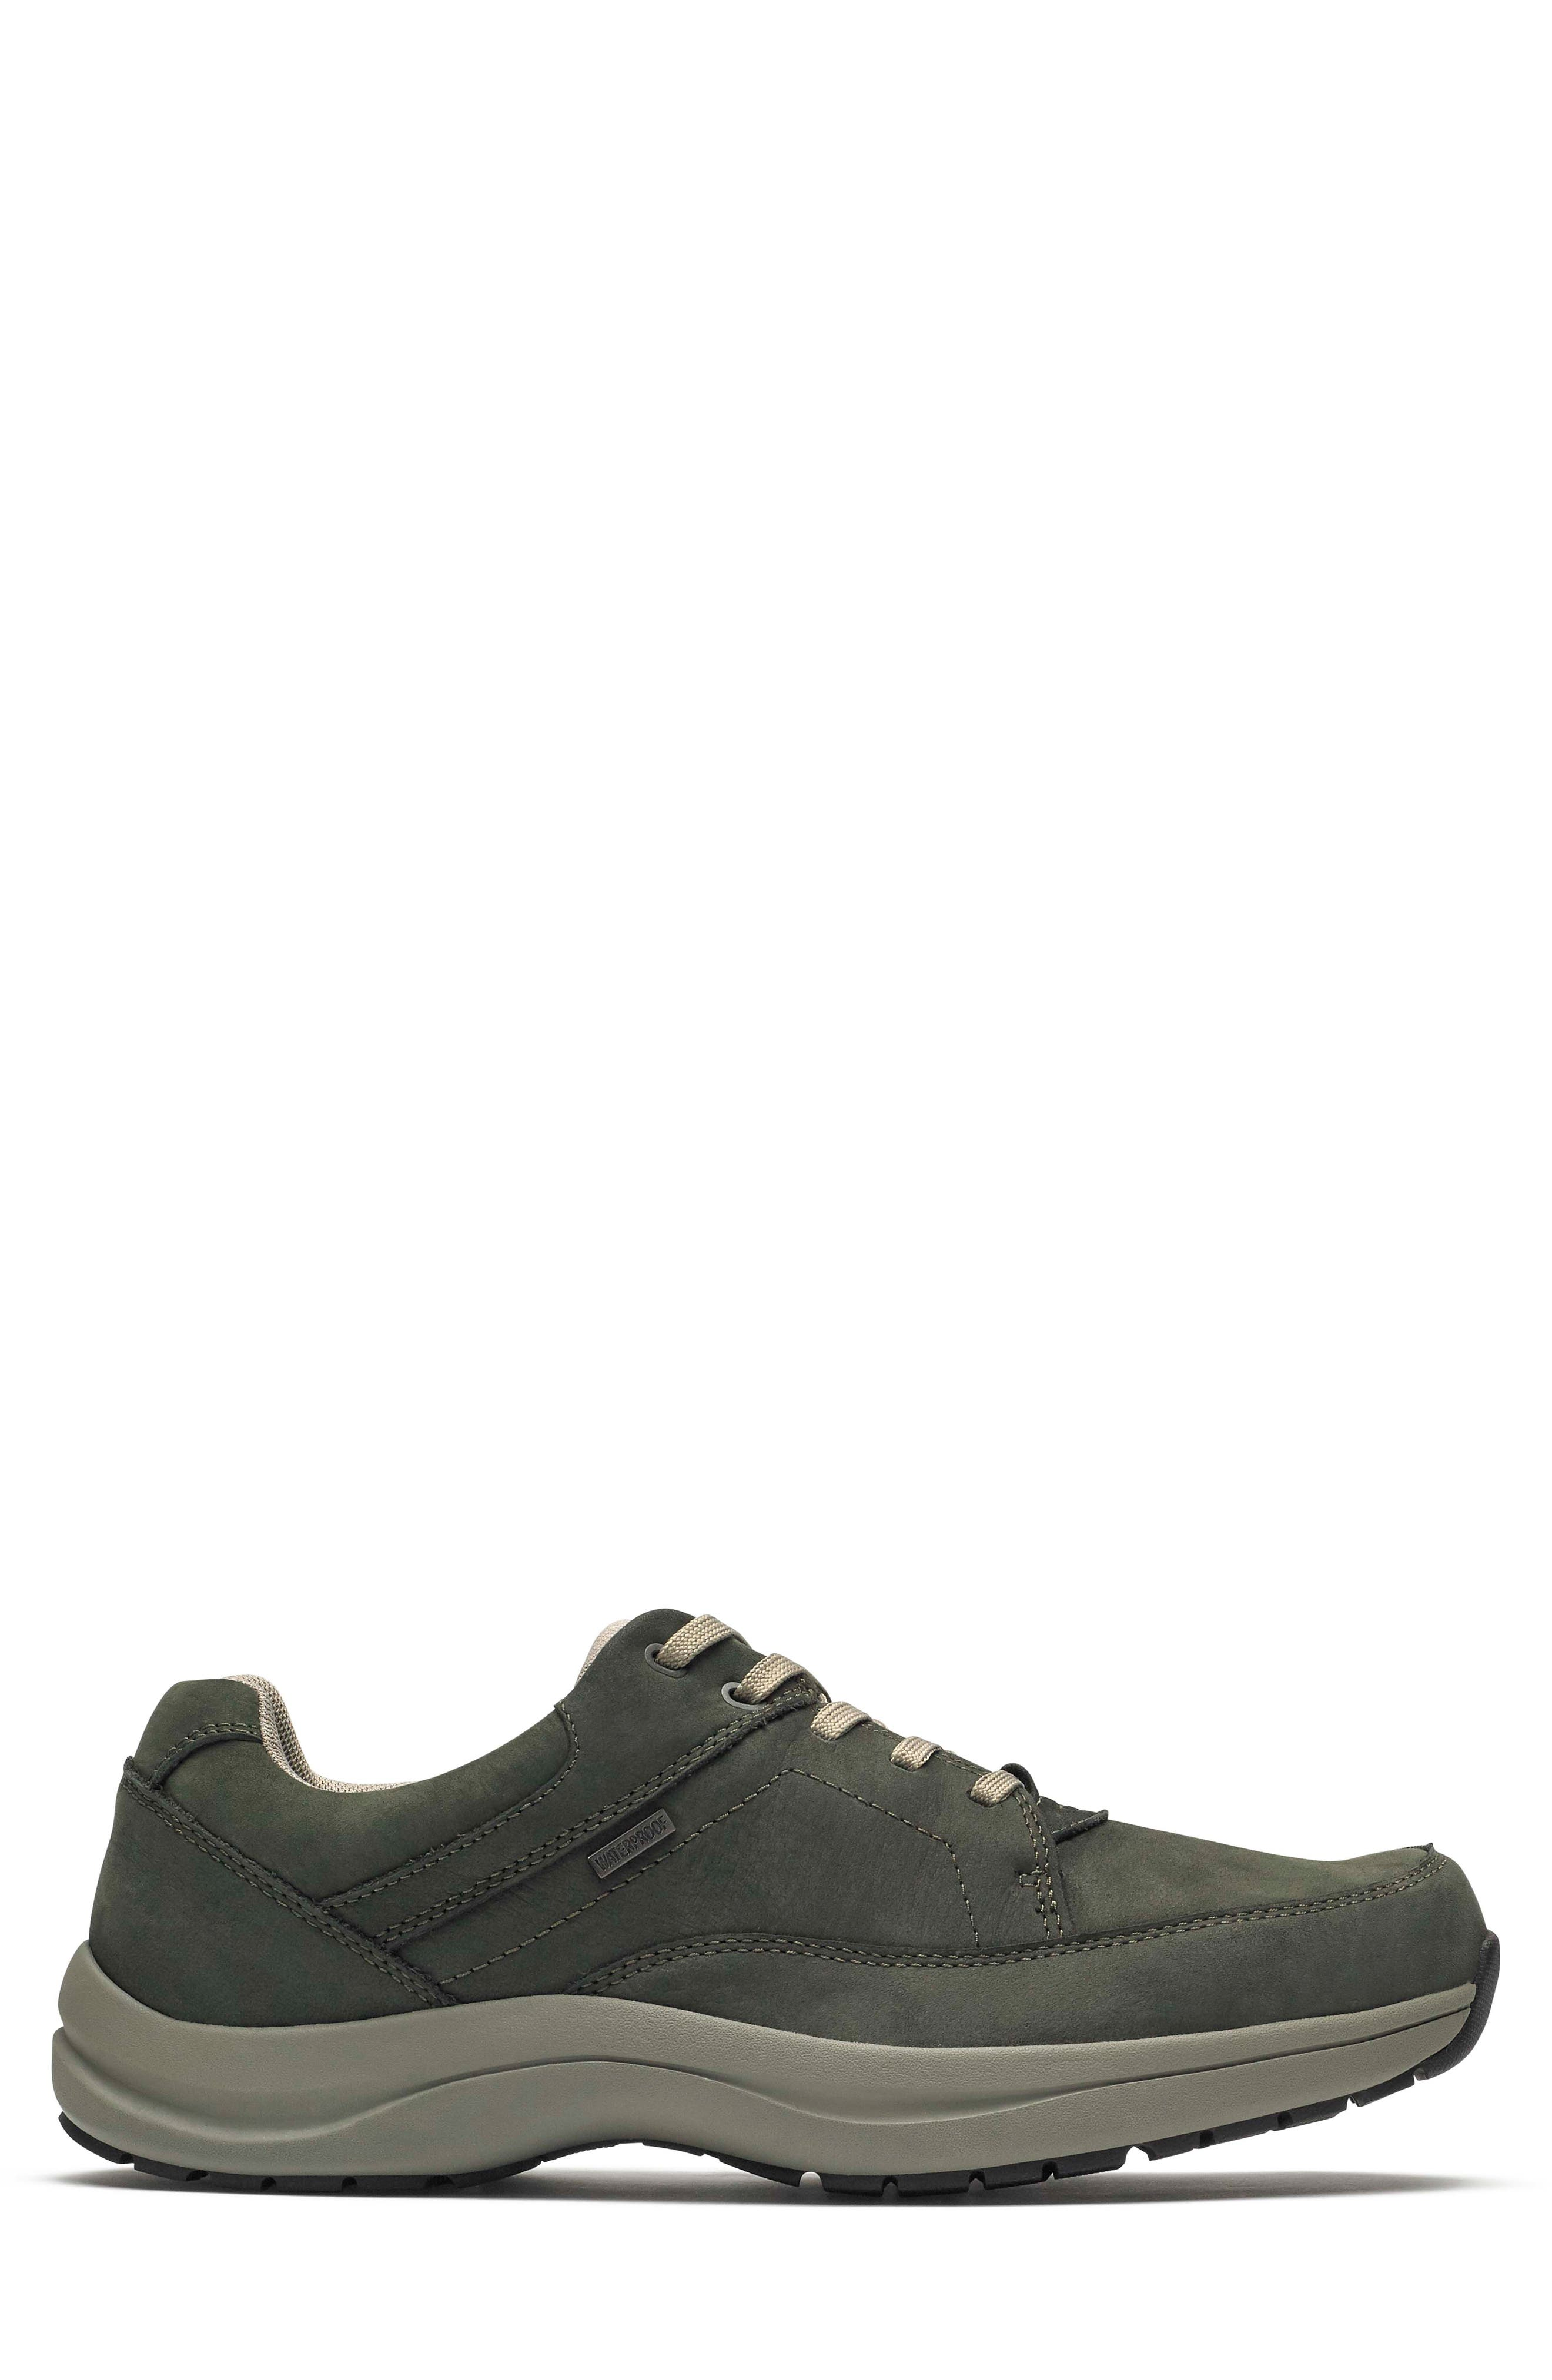 DUNHAM, Stephen-DUN Waterproof Derby, Alternate thumbnail 3, color, GREEN LEATHER